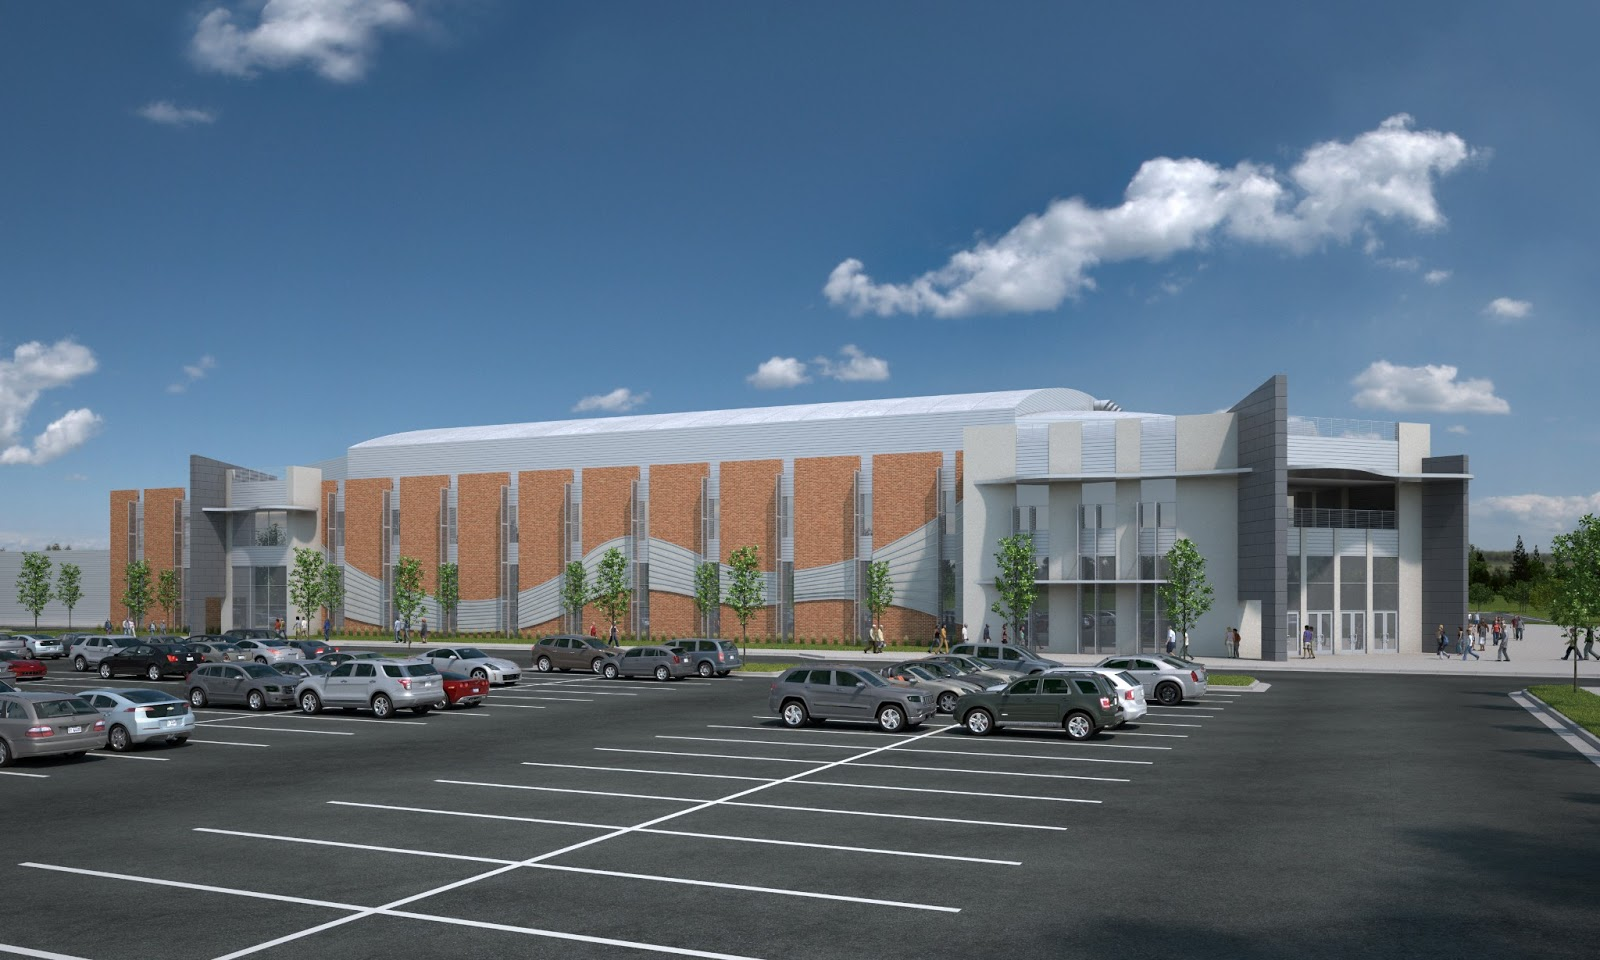 Idaho corporate income tax due date - Design Drawing For Idaho Falls Event Center Made Public